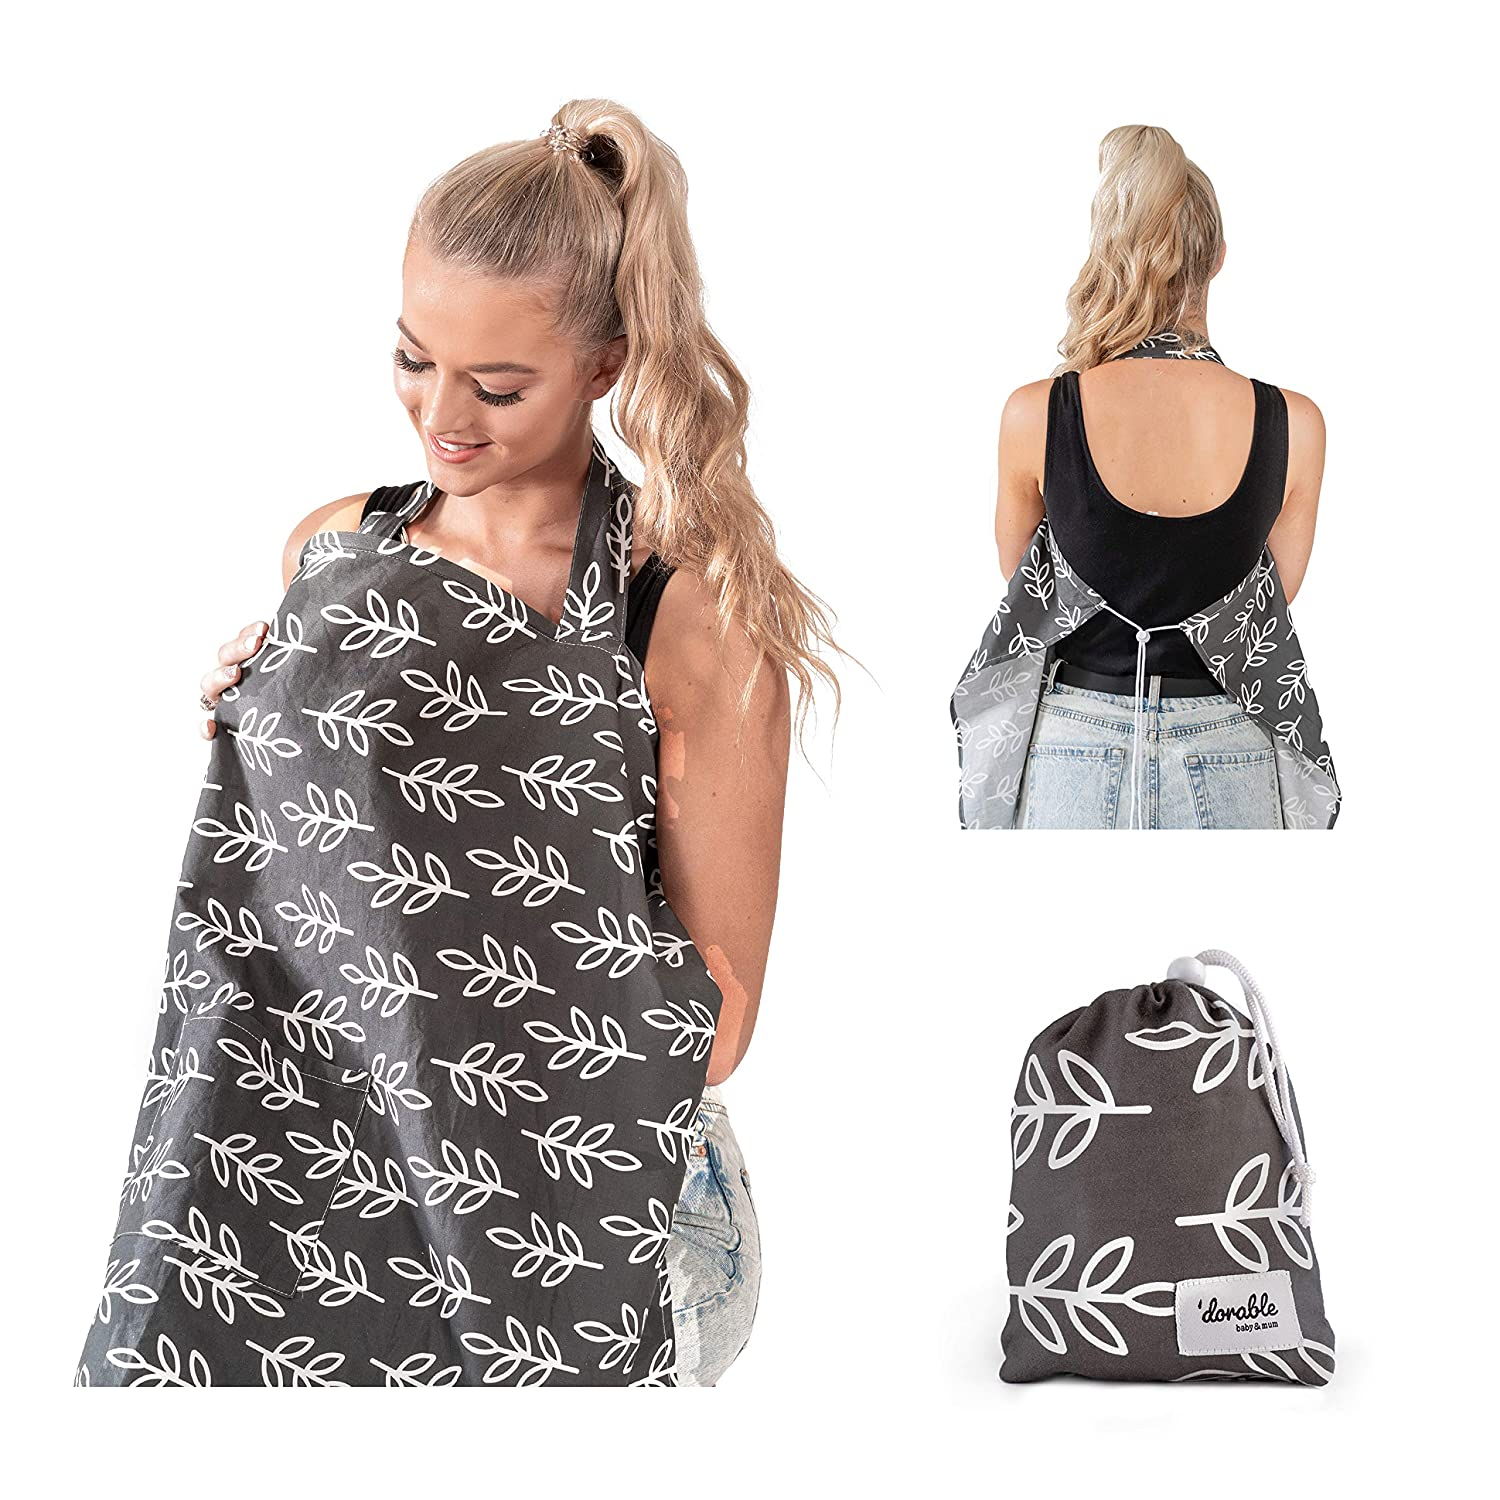 Dark UHINOOS Nursing Cover,Infinity Soft Breastfeeding Cotton for Babies with No See Through Cotton for Mother Nursing Apron for Breastfeeding